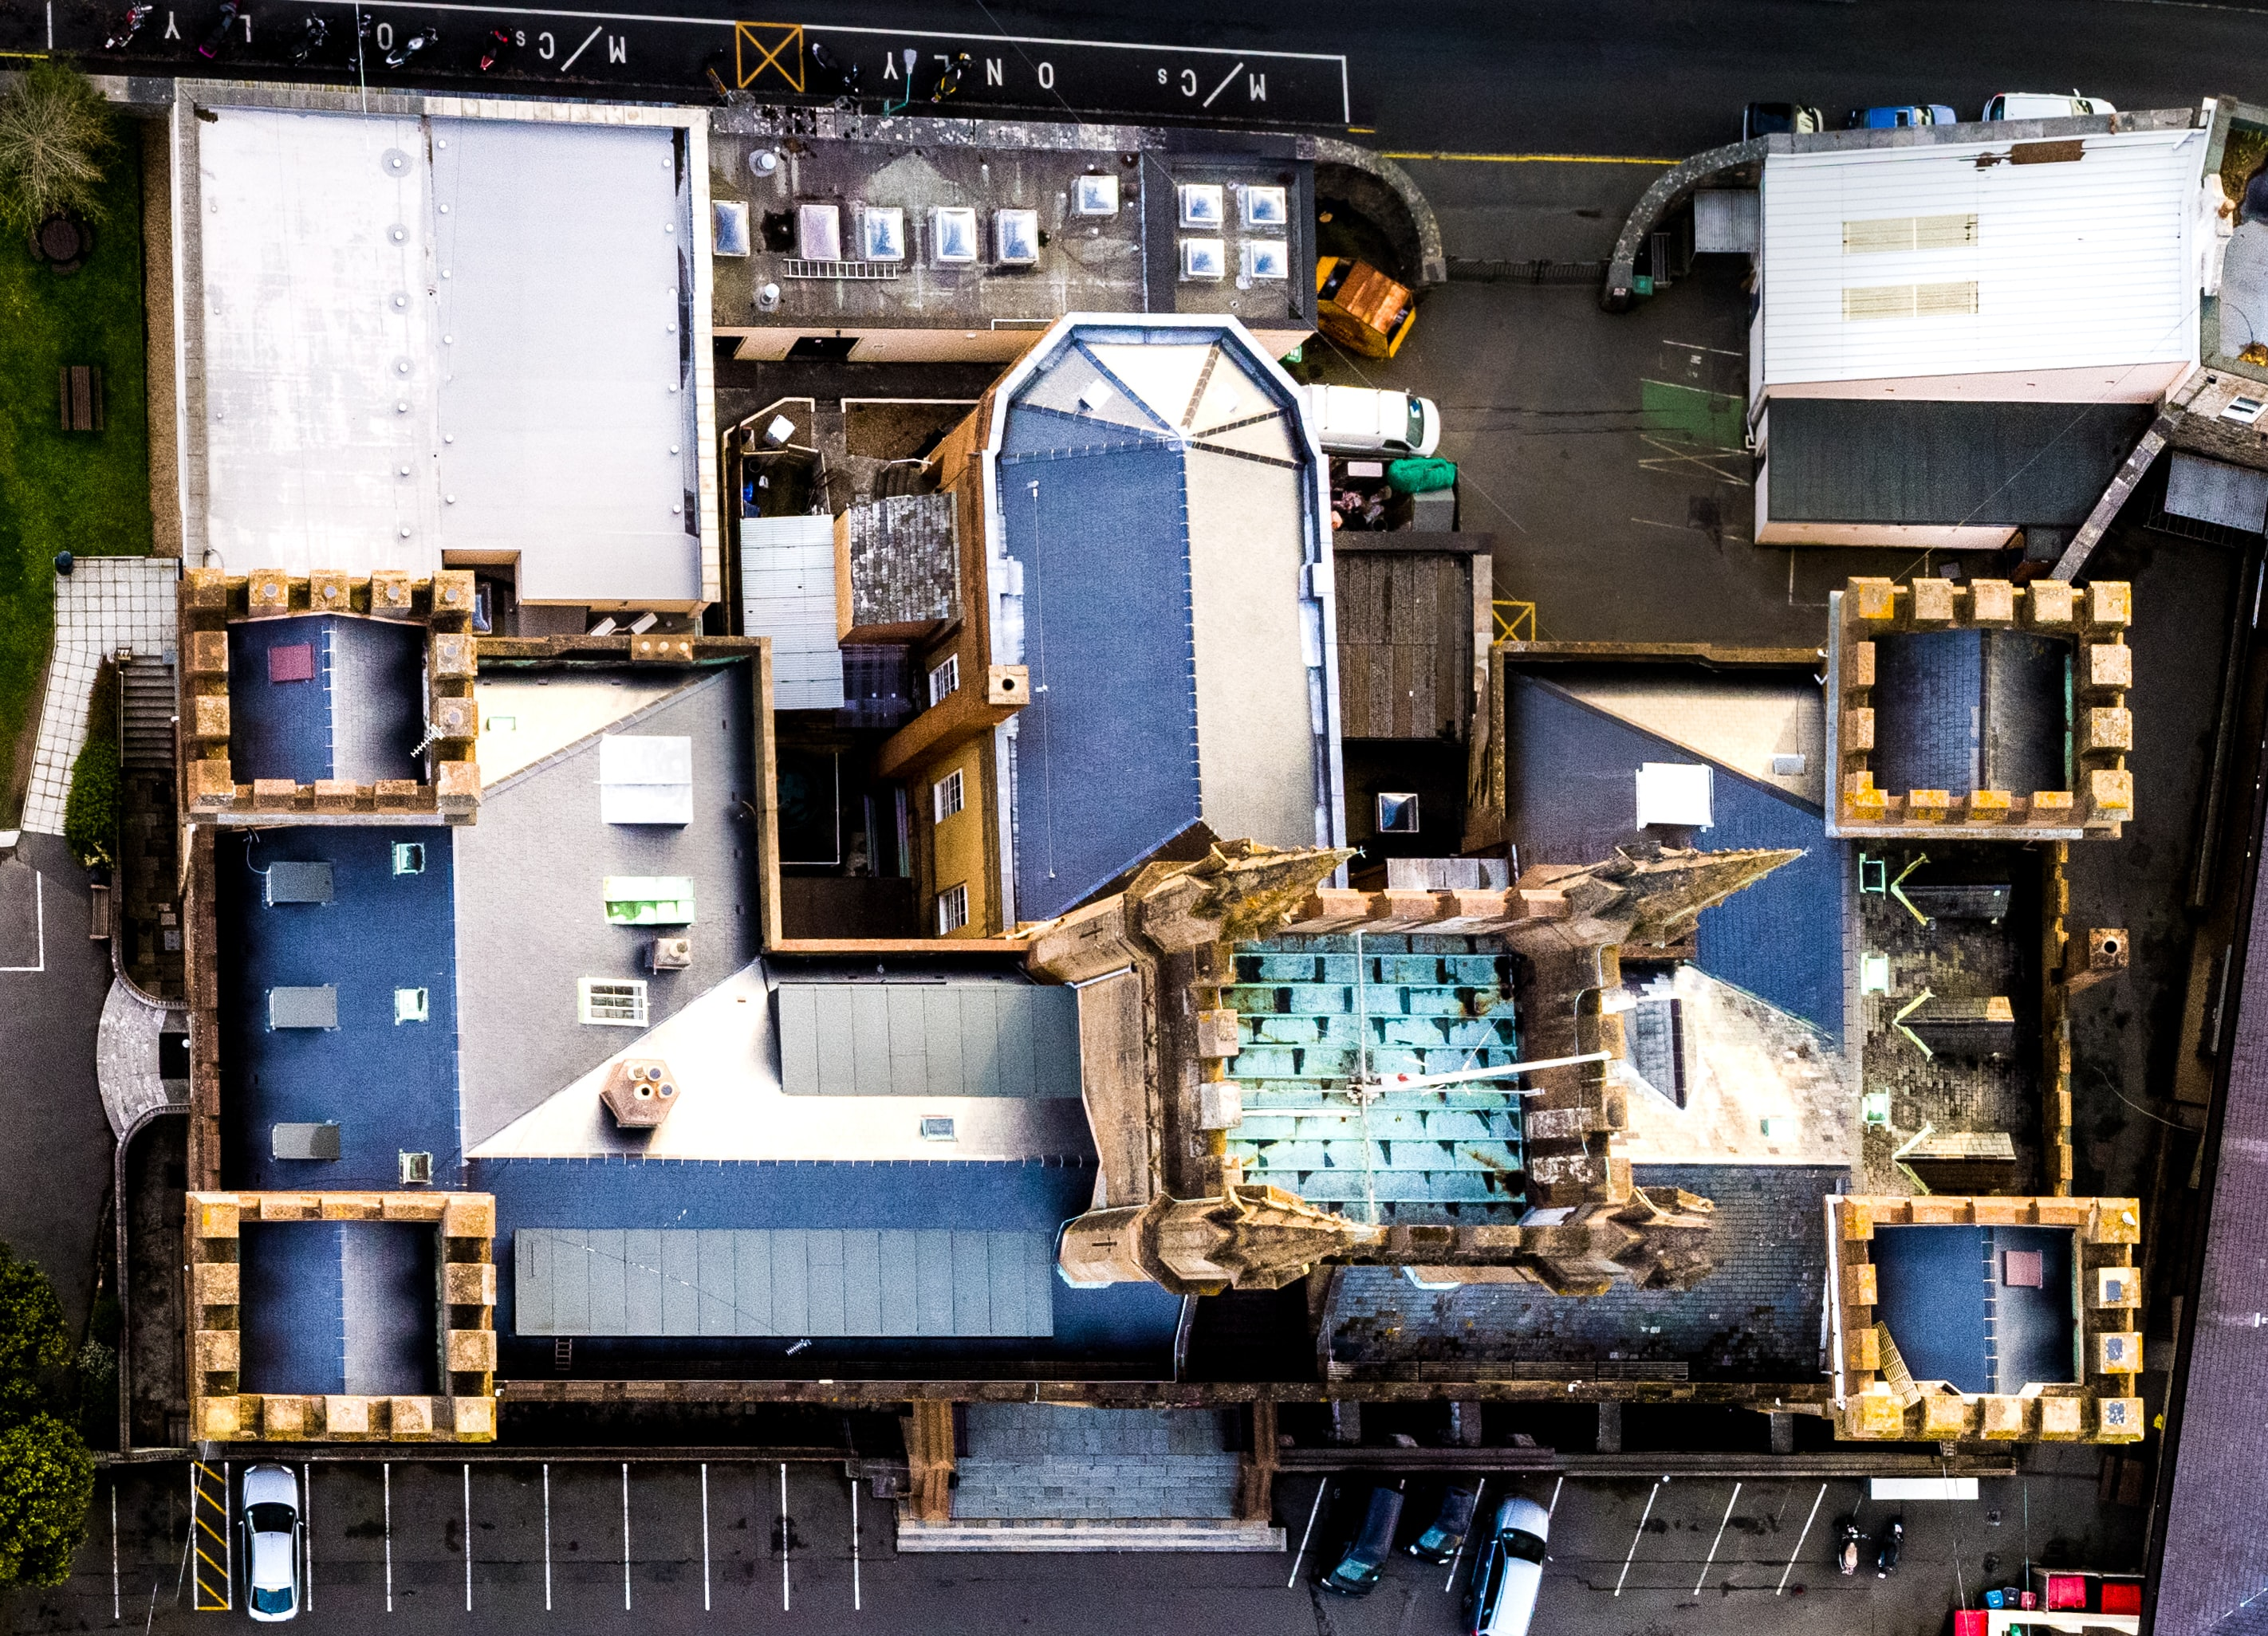 Aerial drone view of a rooftop of the building at the Elizabeth College